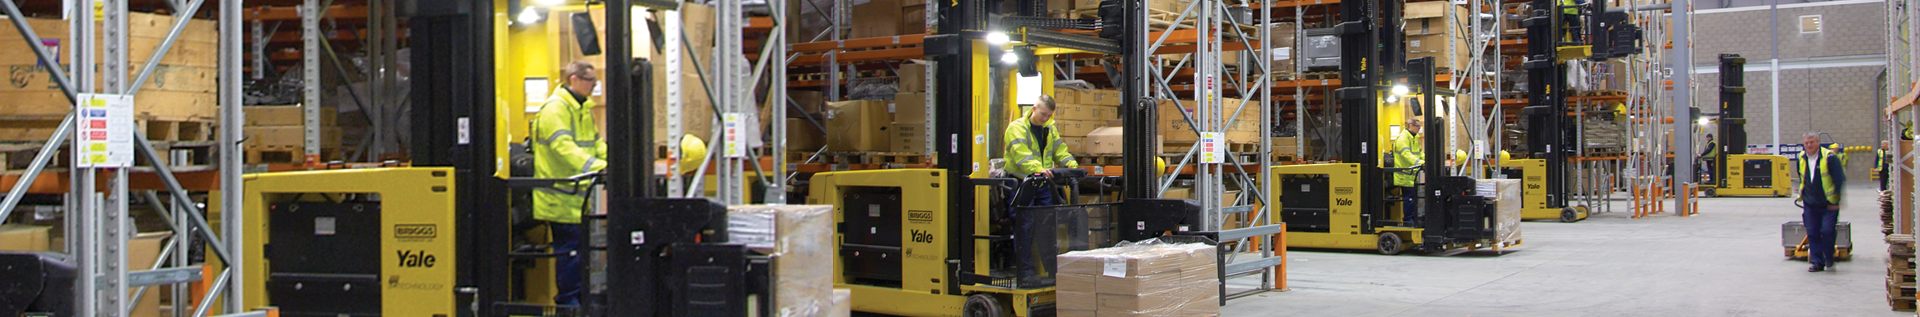 Hyster-Yale Materials Handling, Inc , About Hyster-Yale - About